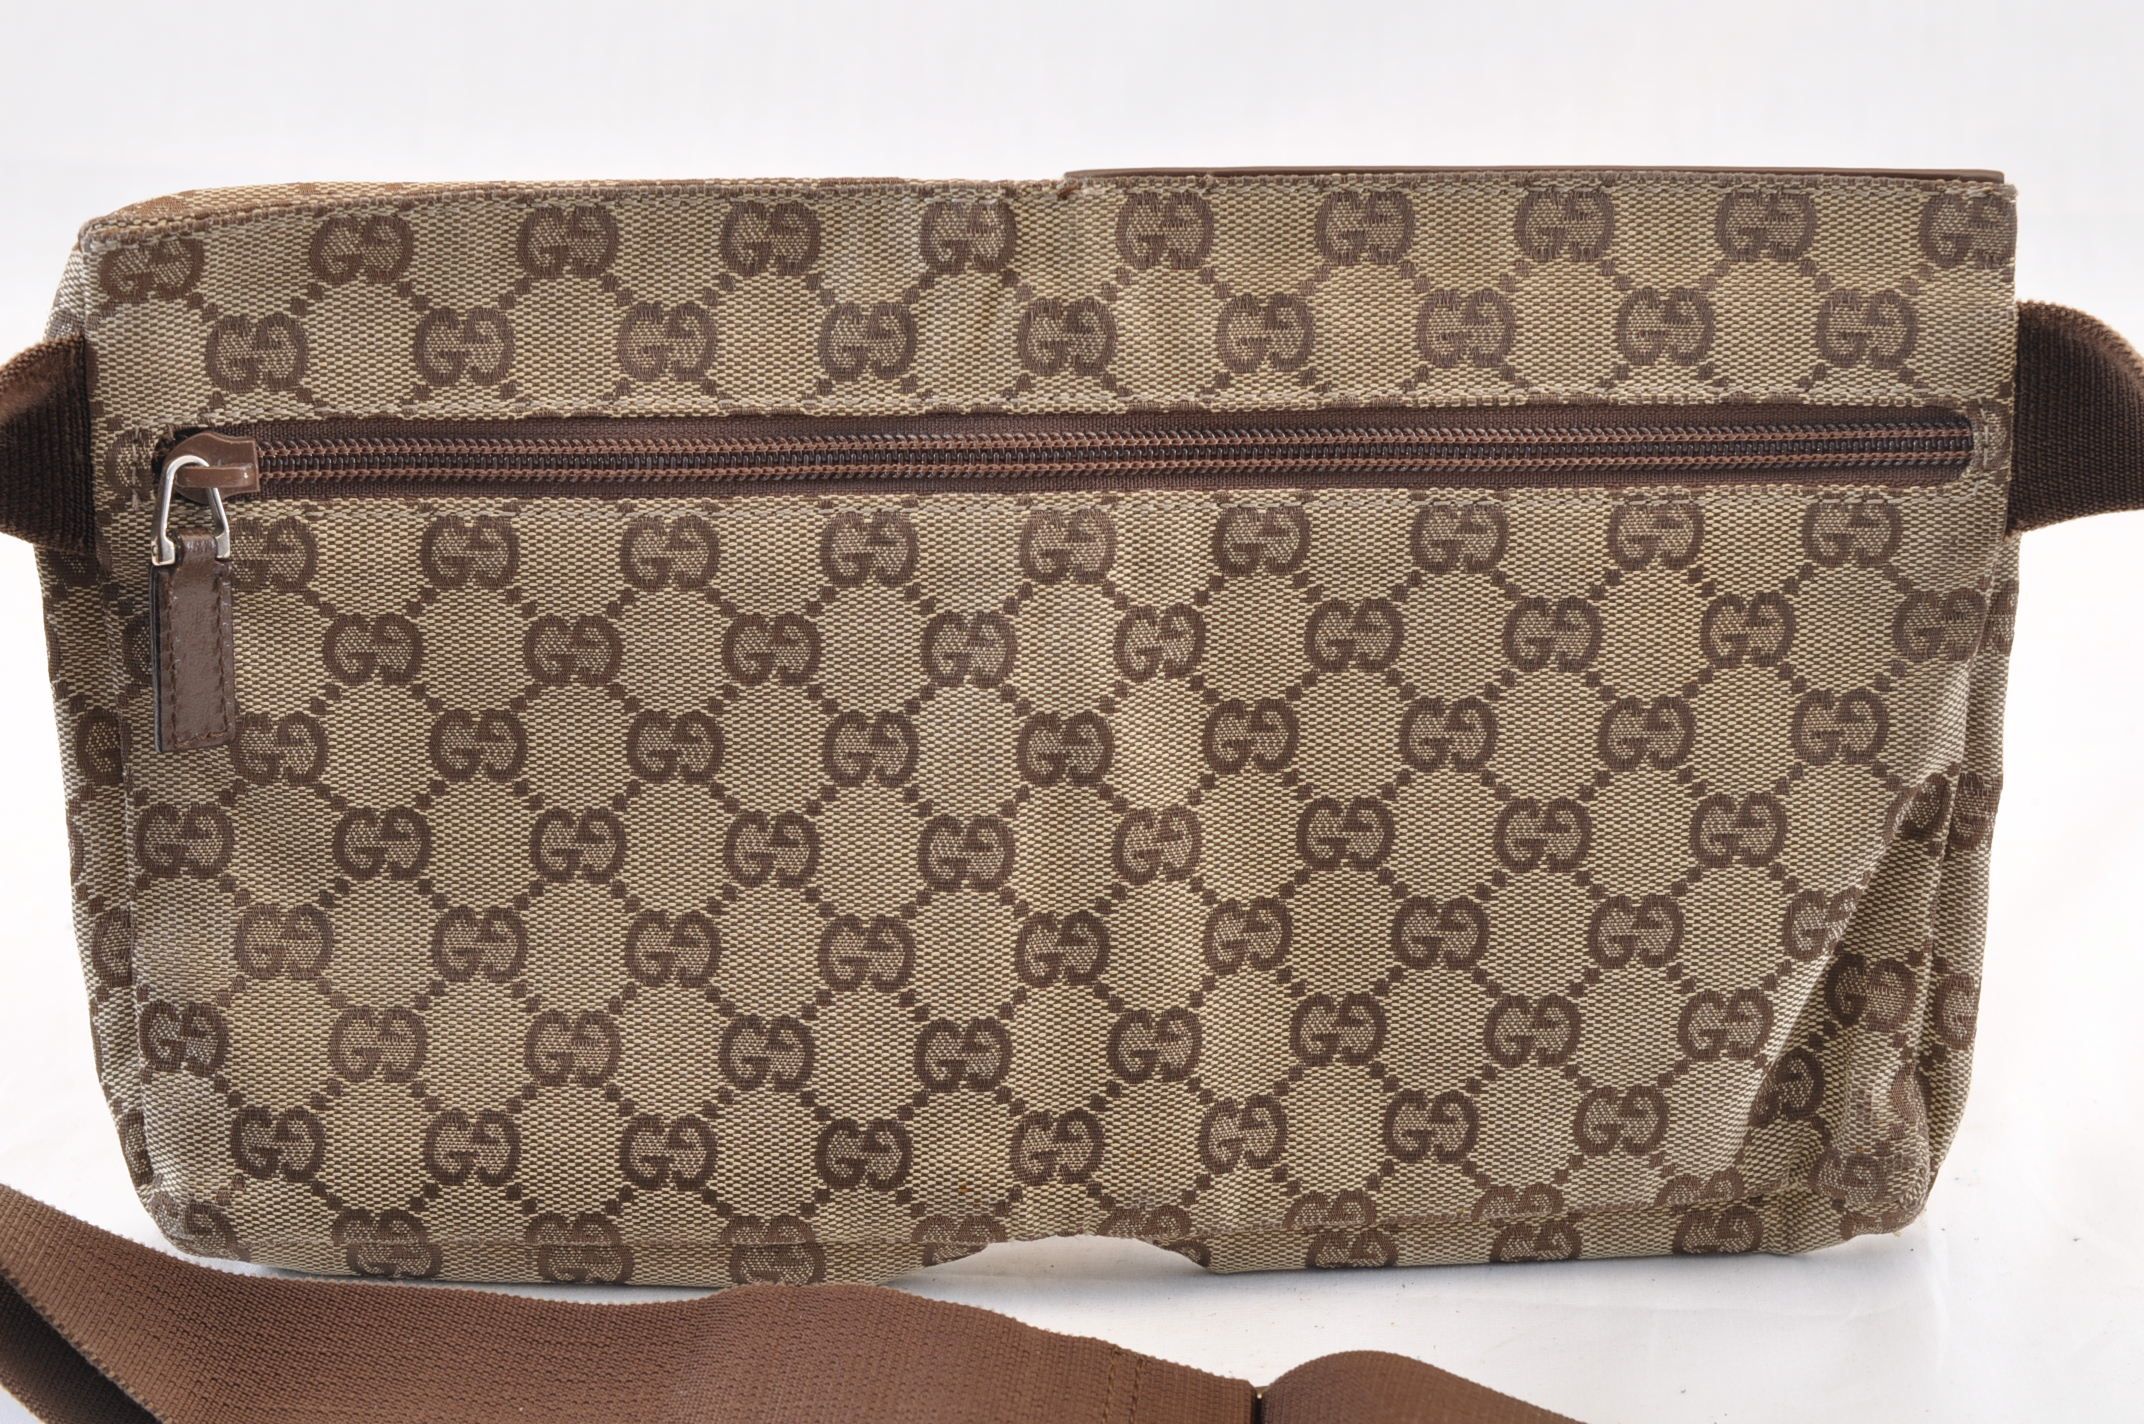 566f9a649 GUCCI GG Canvas Leather Waist Bag Pouch Brown Auth 7006 – Brand Street